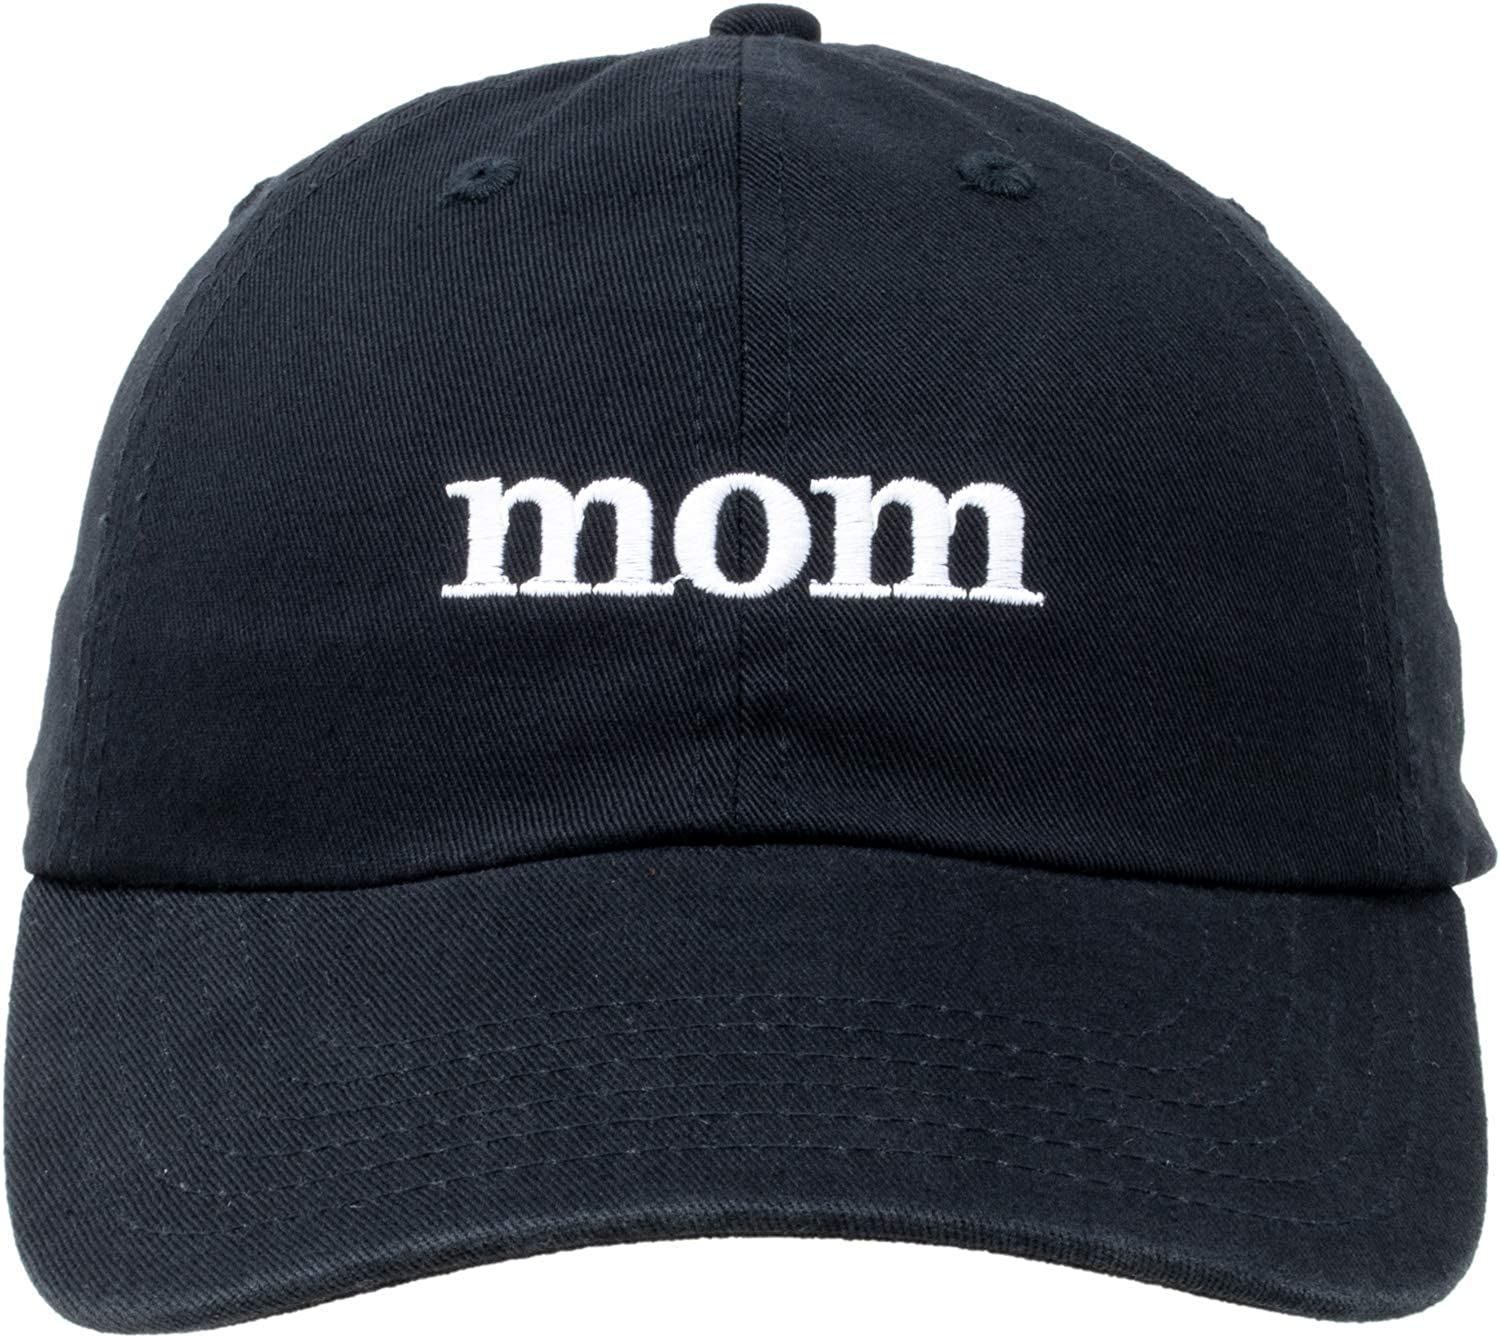 Mom Hat | Cute, Funny Fun Stitched Baseball Cap for Women Mothers Mommy Wife Mrs - Black: Clothing